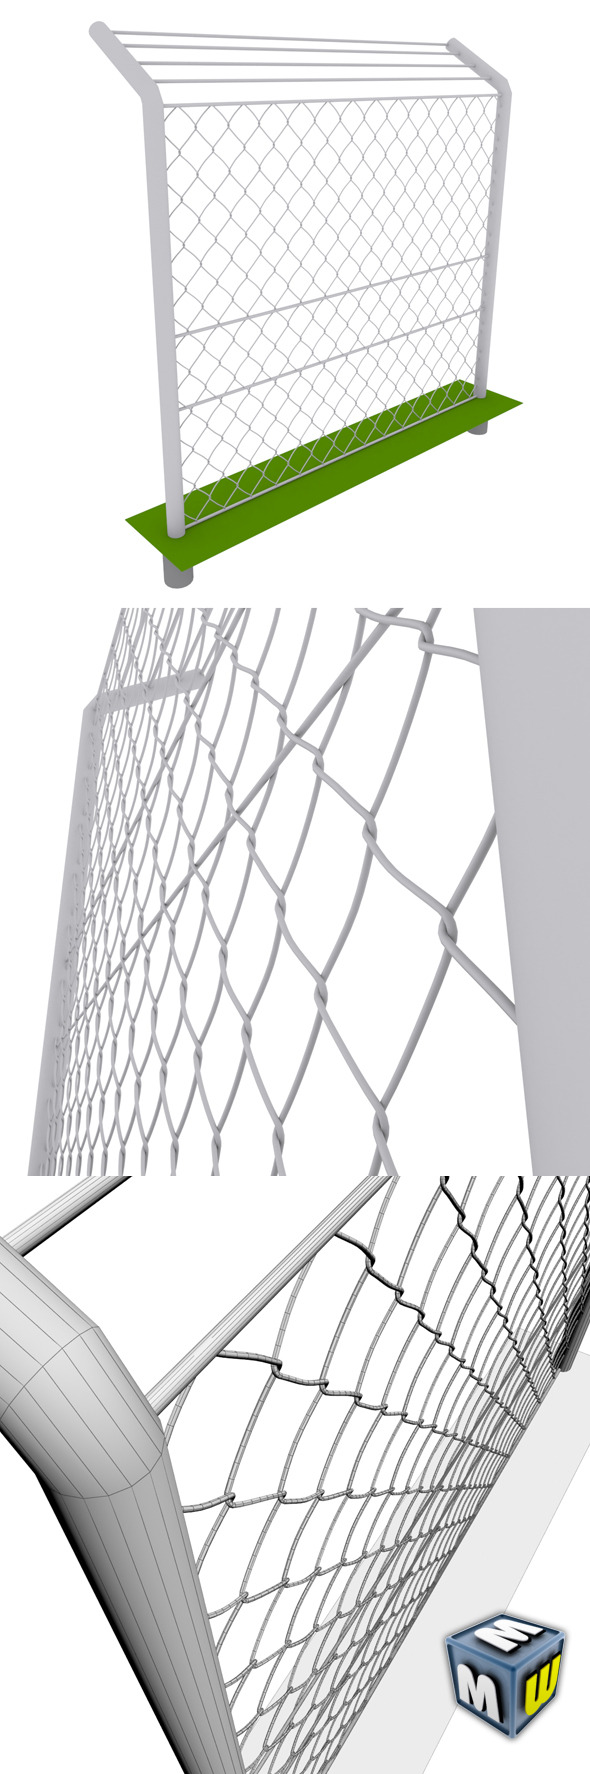 3DOcean Mesh Fence max 2010 5107176